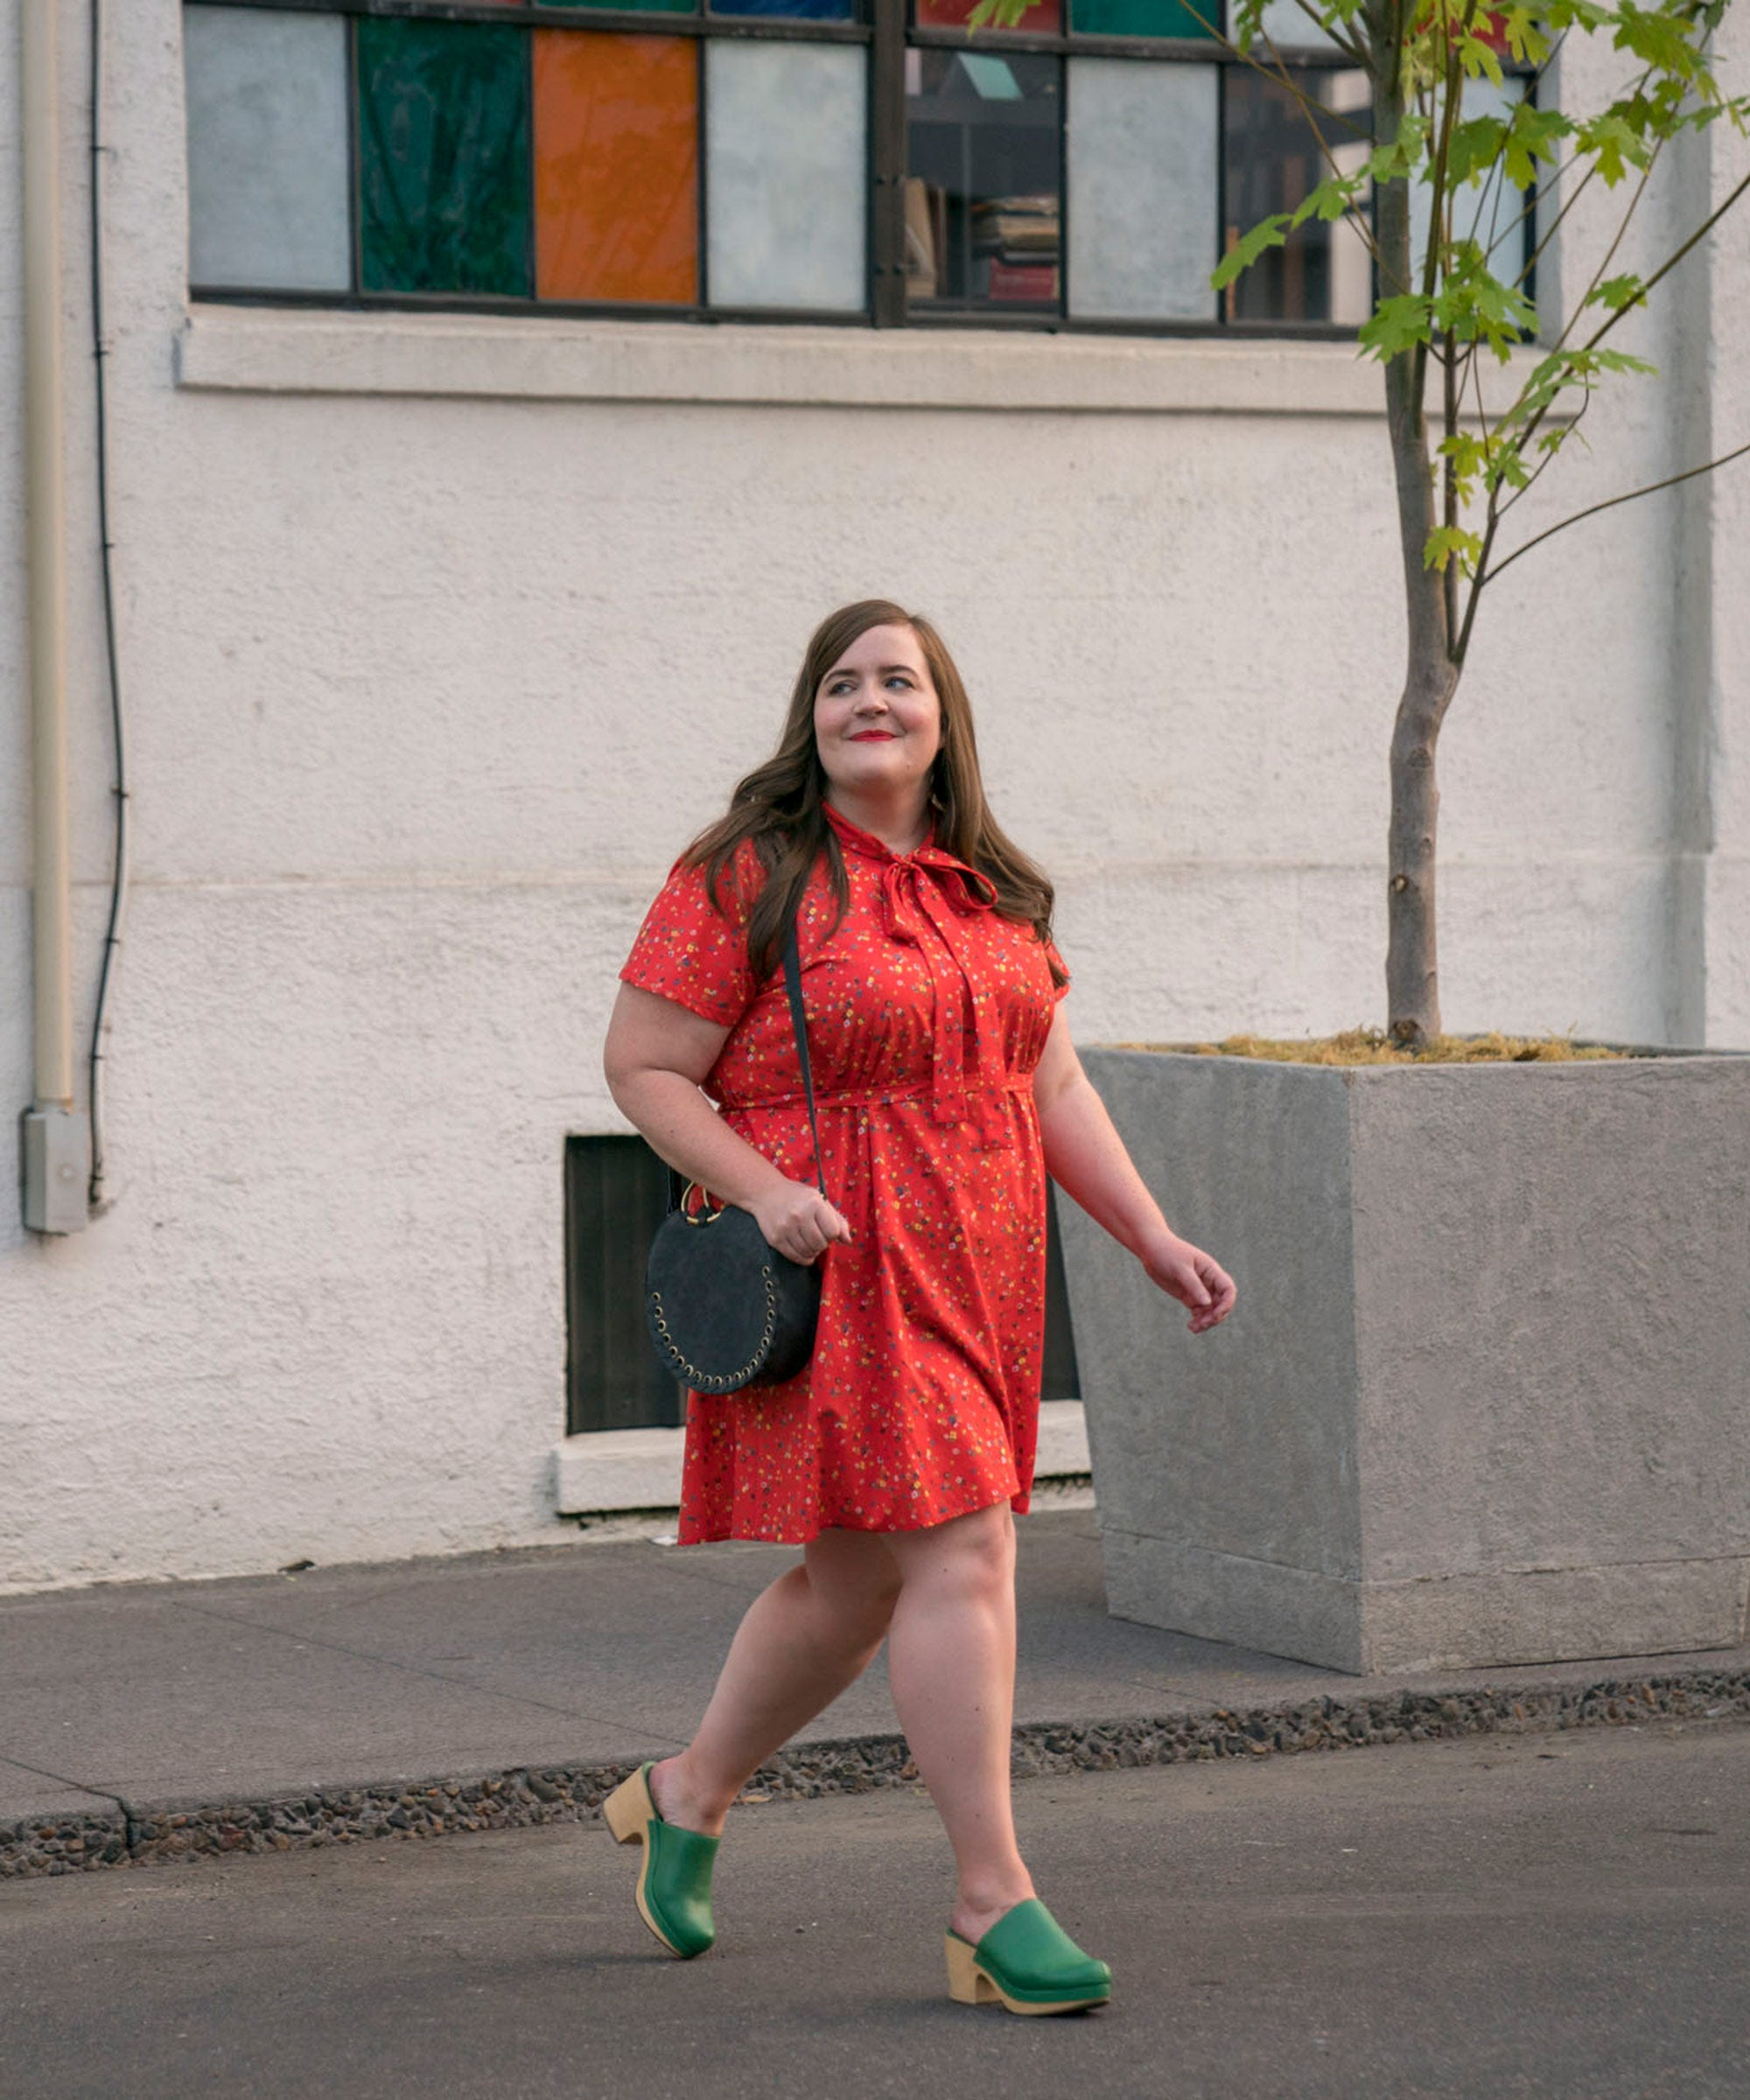 I've Waited Too Long For A Show Like Shrill & Its Brilliant Plus-Size Lead